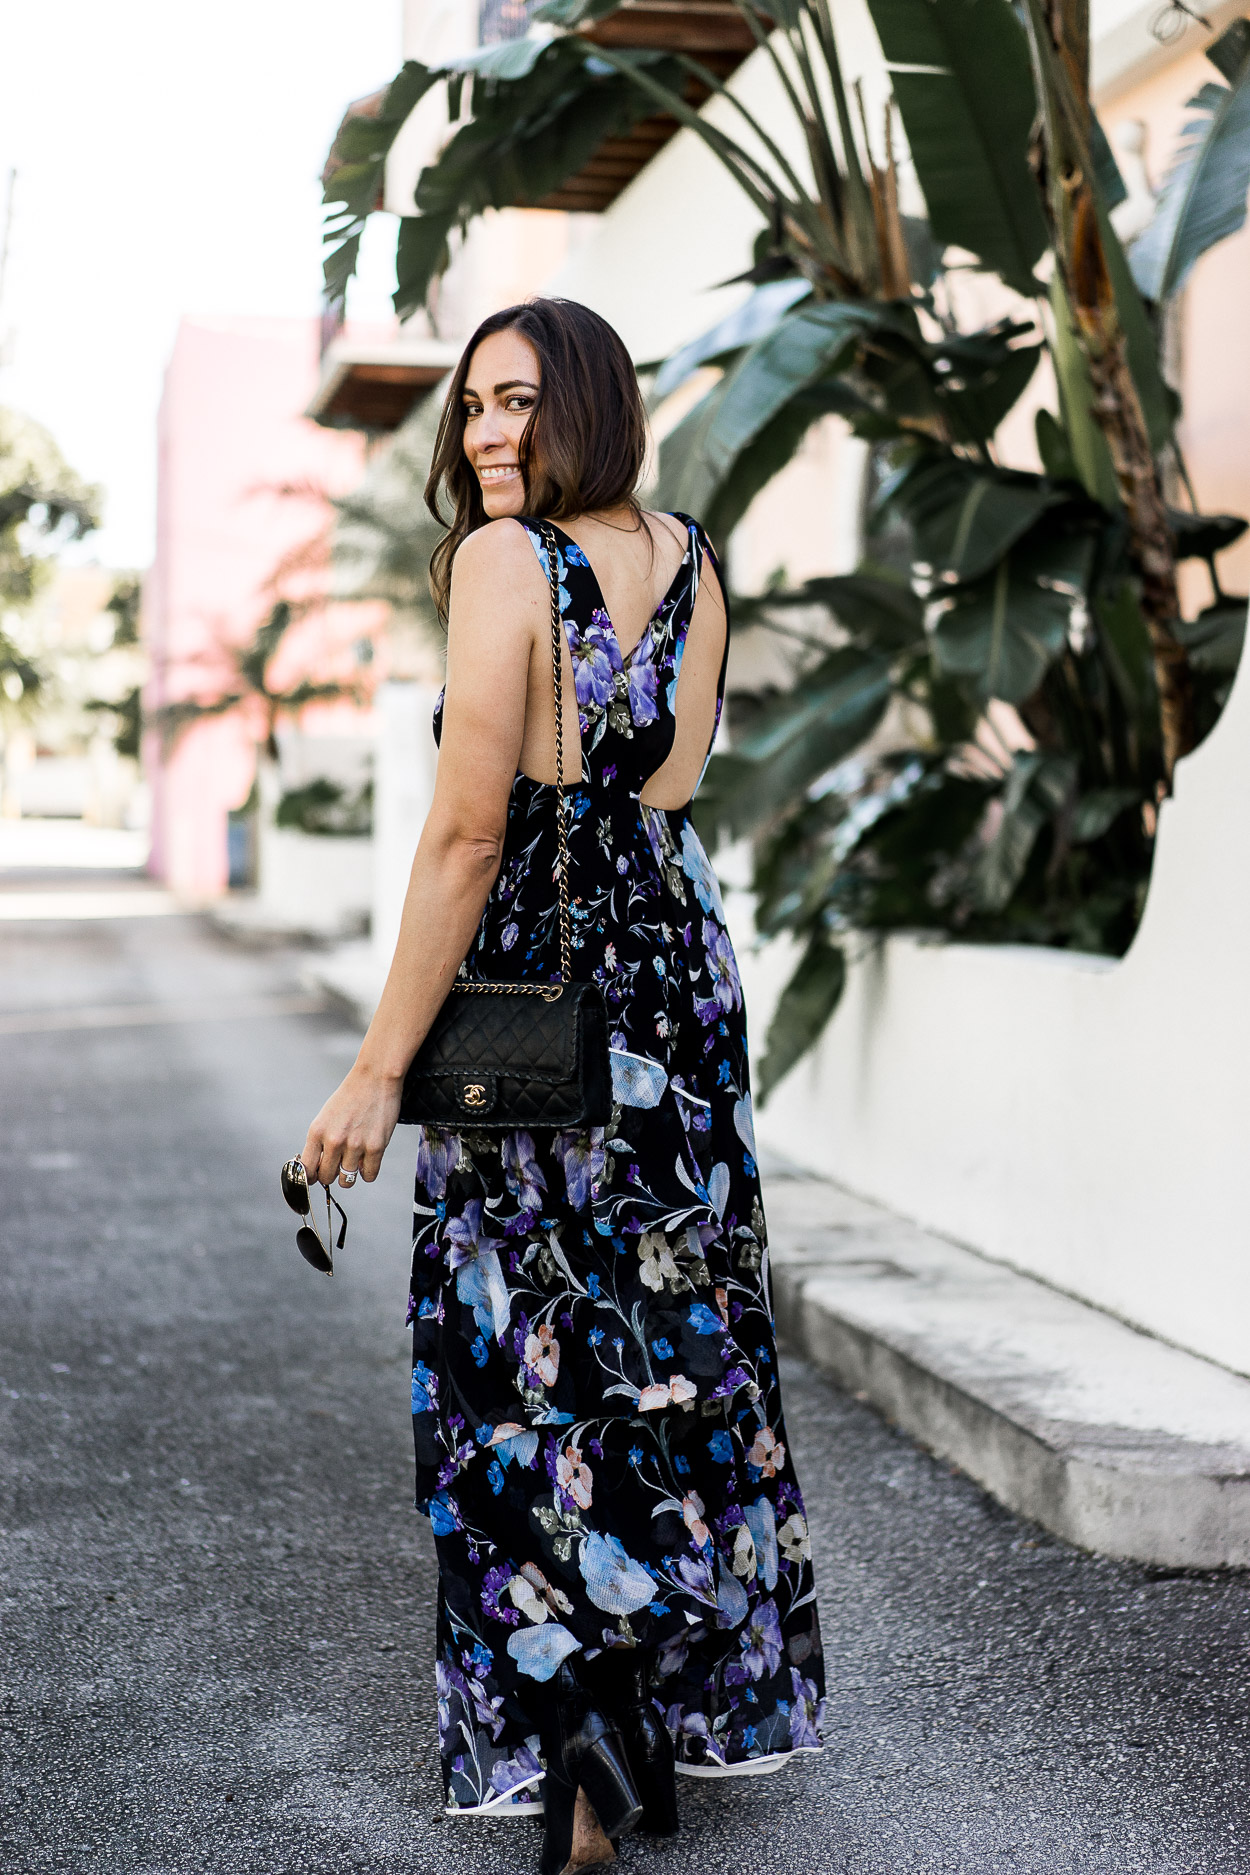 Best brunch outfits compiled by fashion blogger Amanda of A Glam Lifestyle